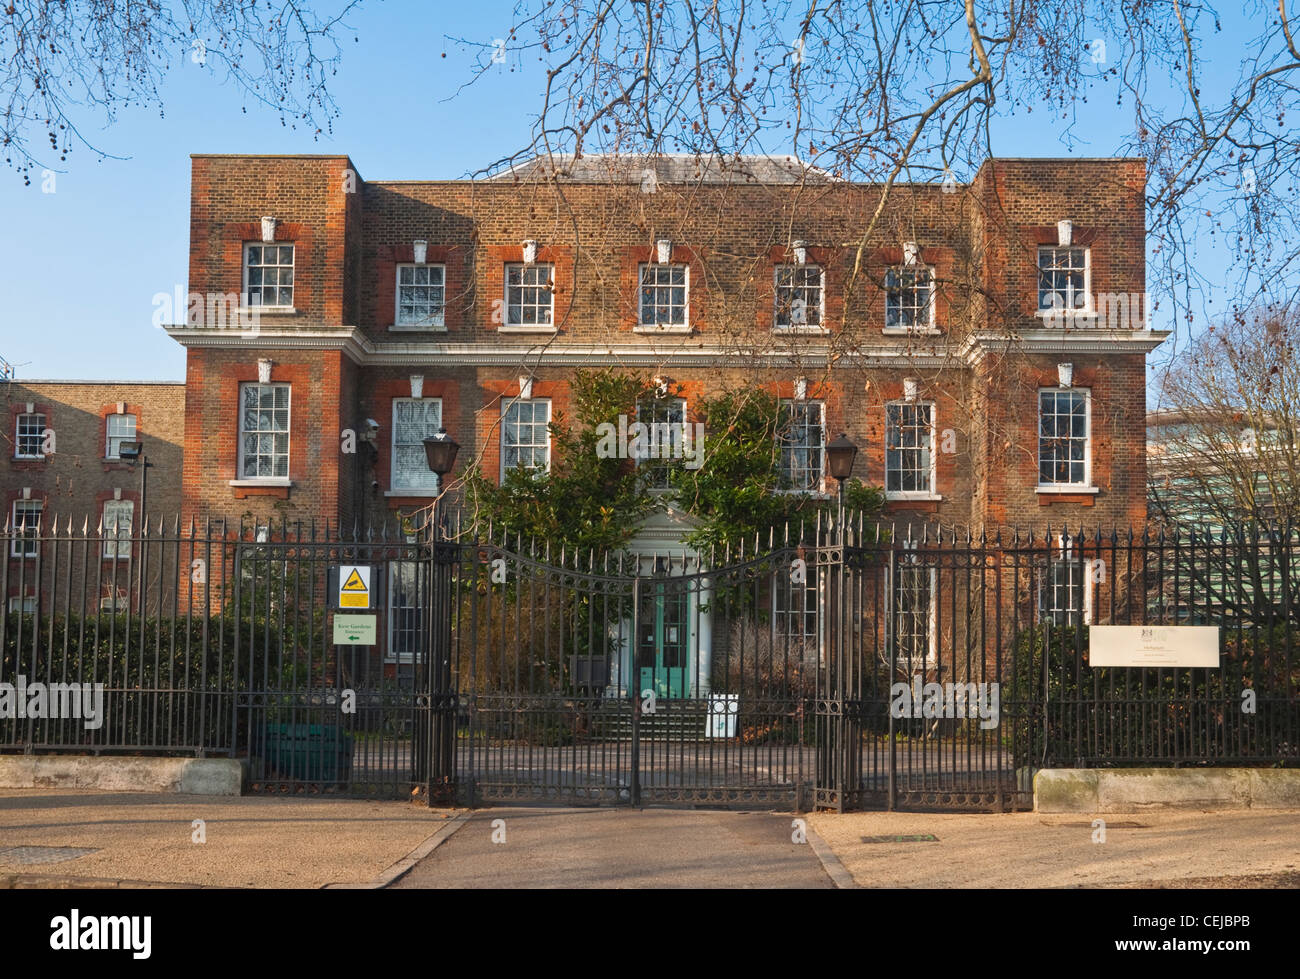 The Herbarium, Kew Green, London - plant library and research centre for The Royal Botanic Gardens at Kew, Surrey, - Stock Image